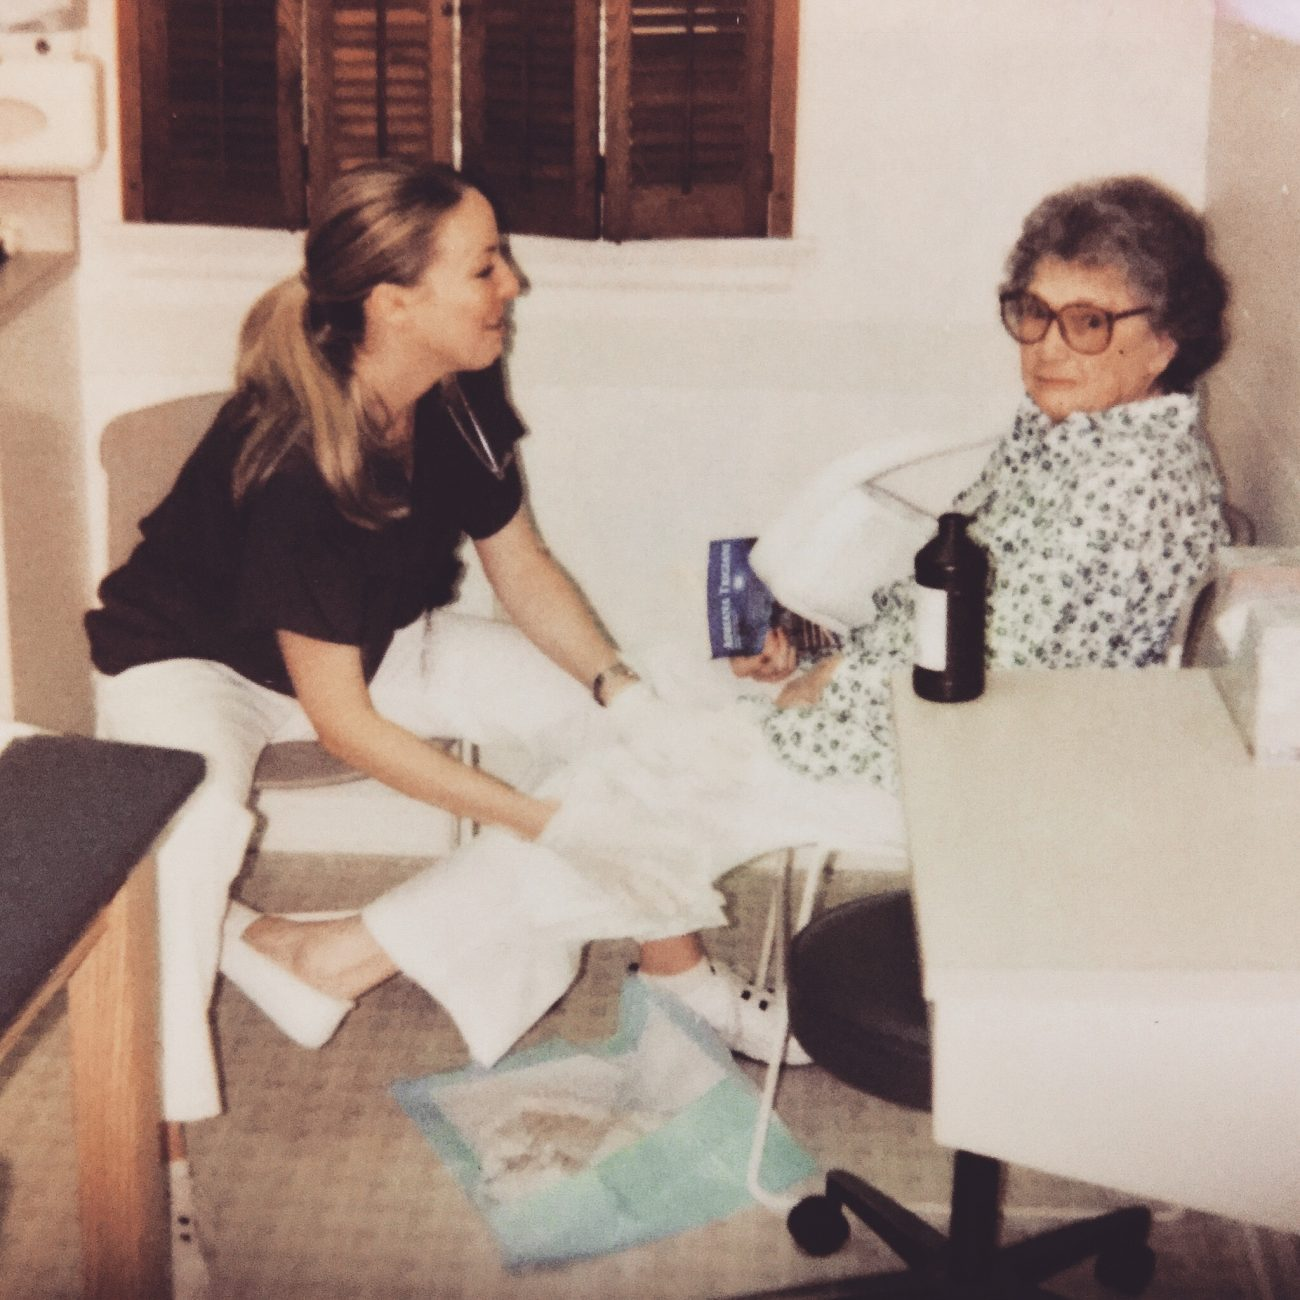 Older photo of staff member with elderly patient